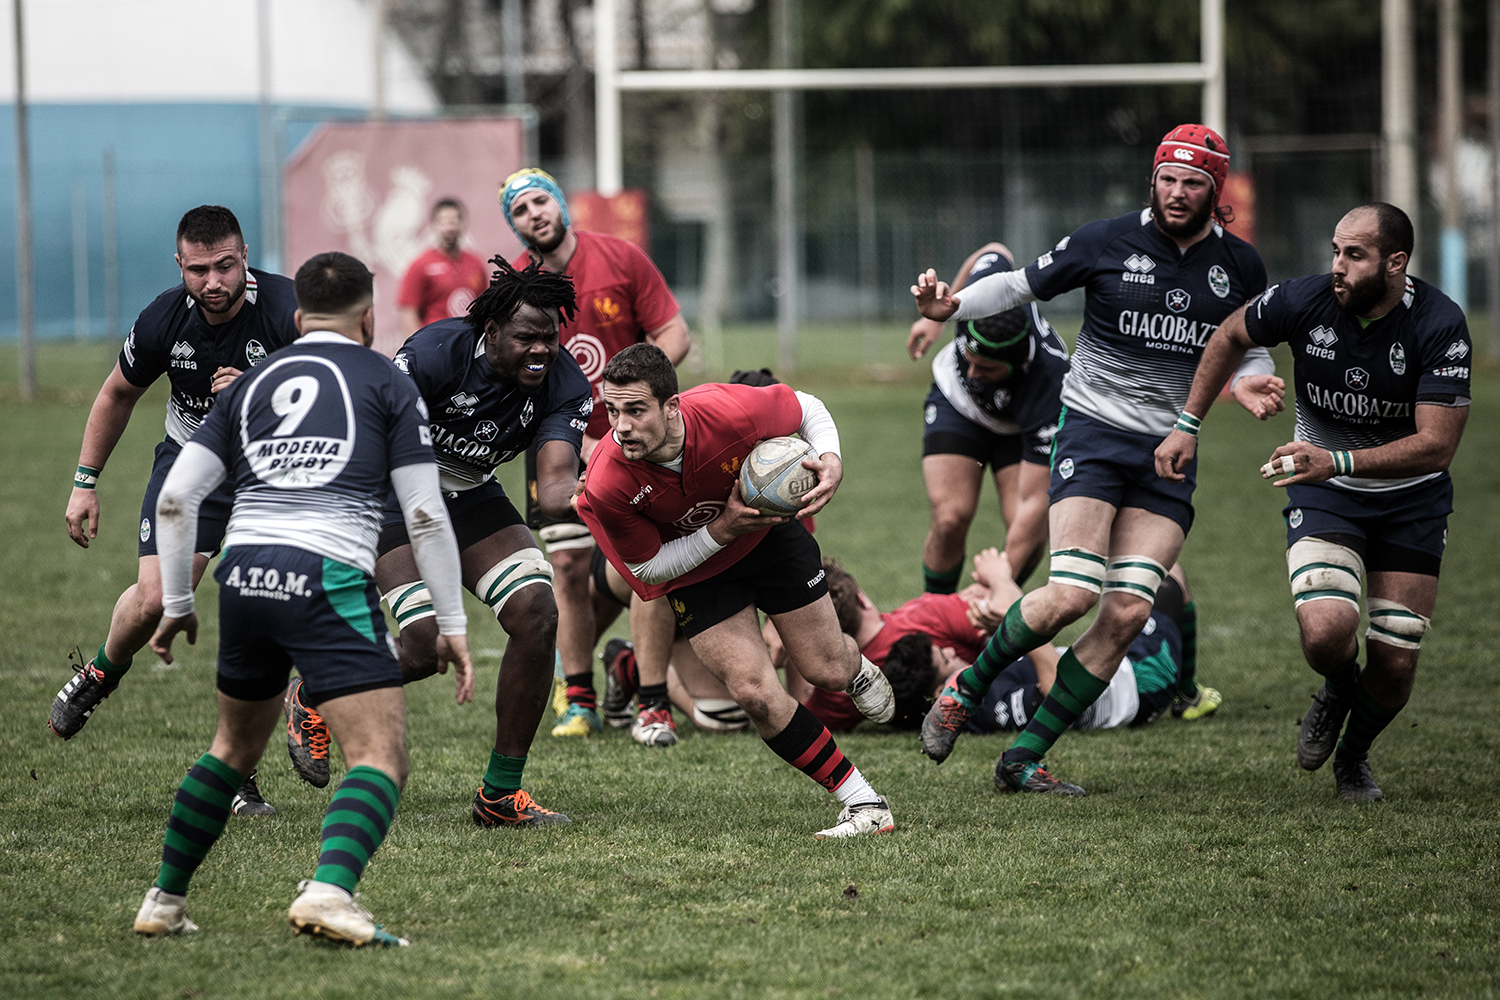 rugby_photograph_13.jpg